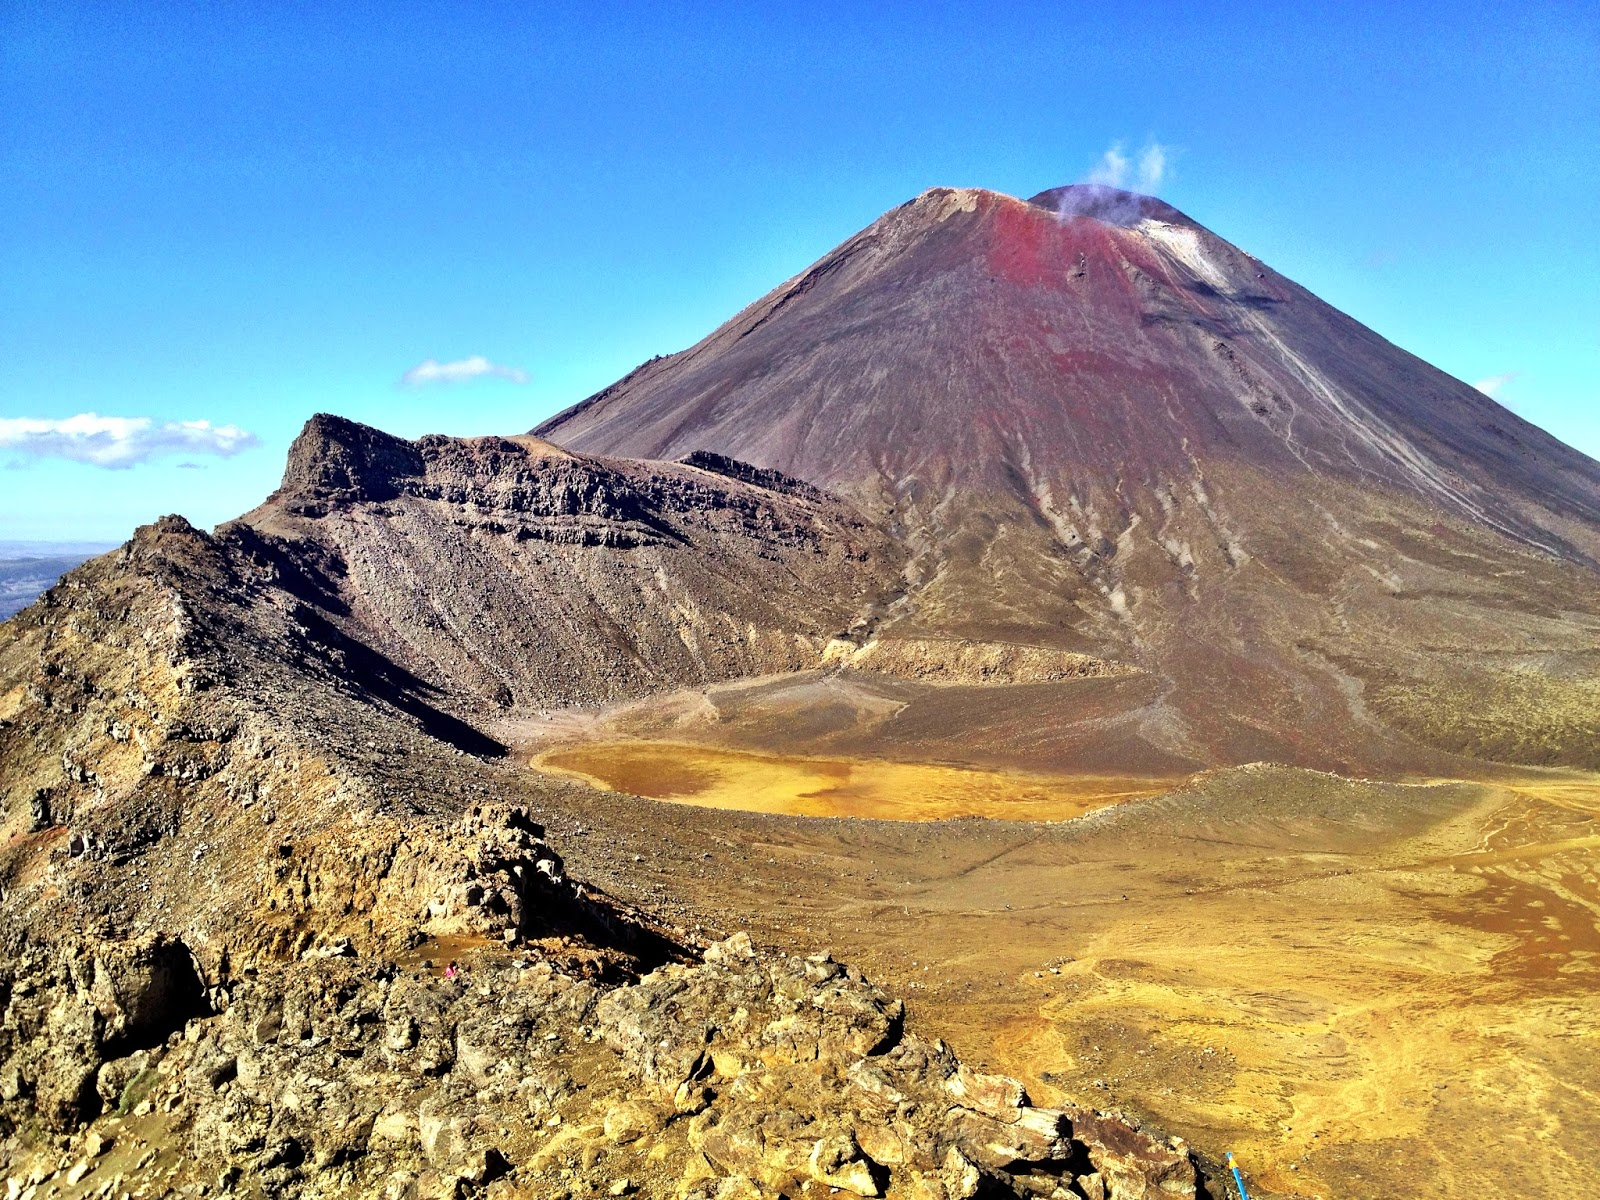 The view towards Mount Ngauruhoe from the Red Crater